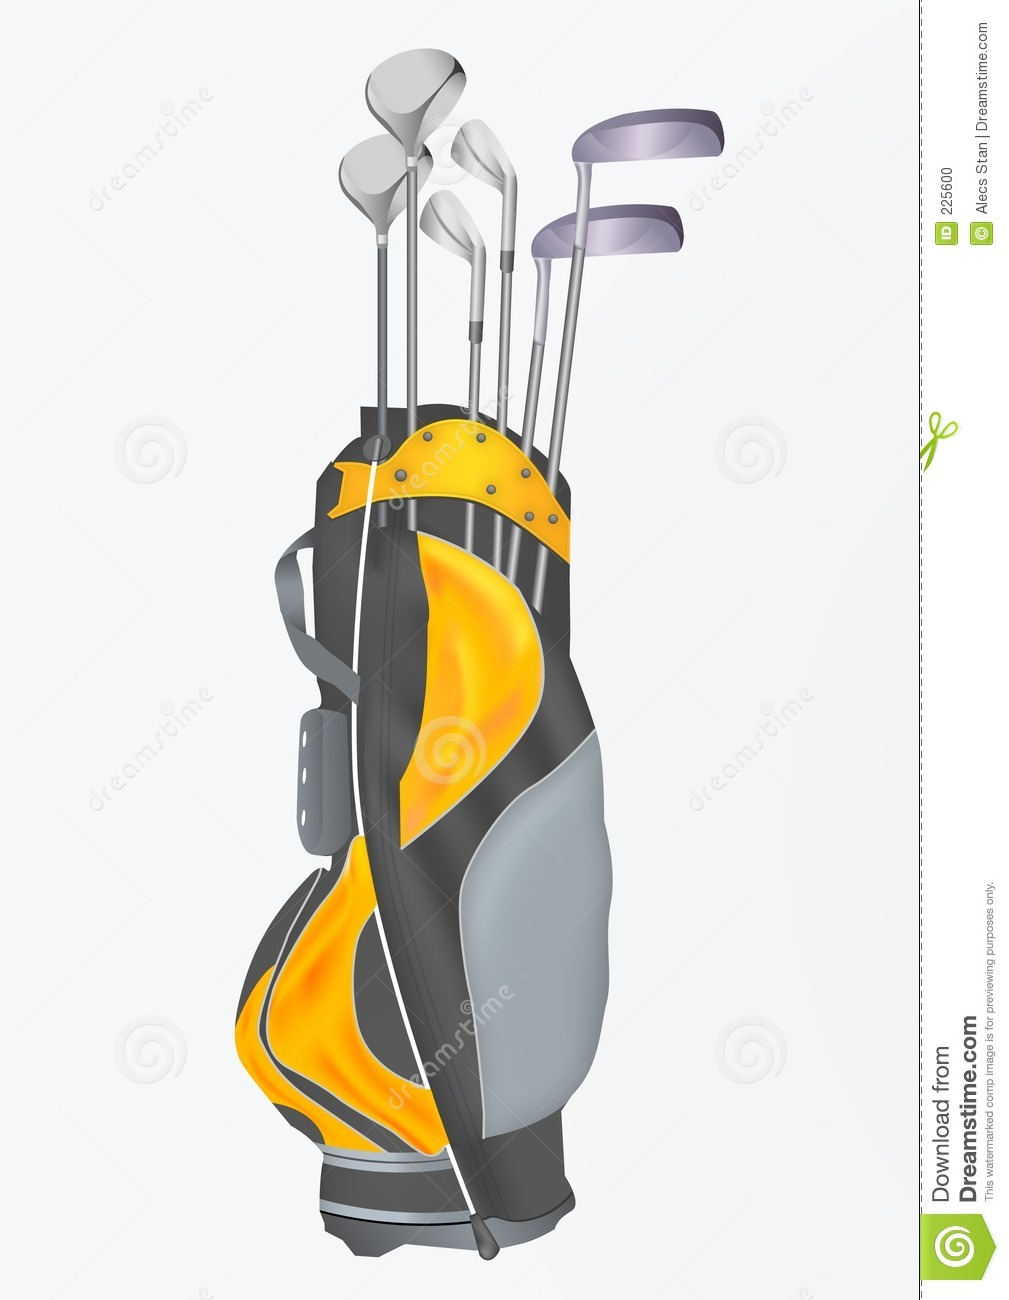 Golf Club Bag Clipart golf bag clipart - clipart kid